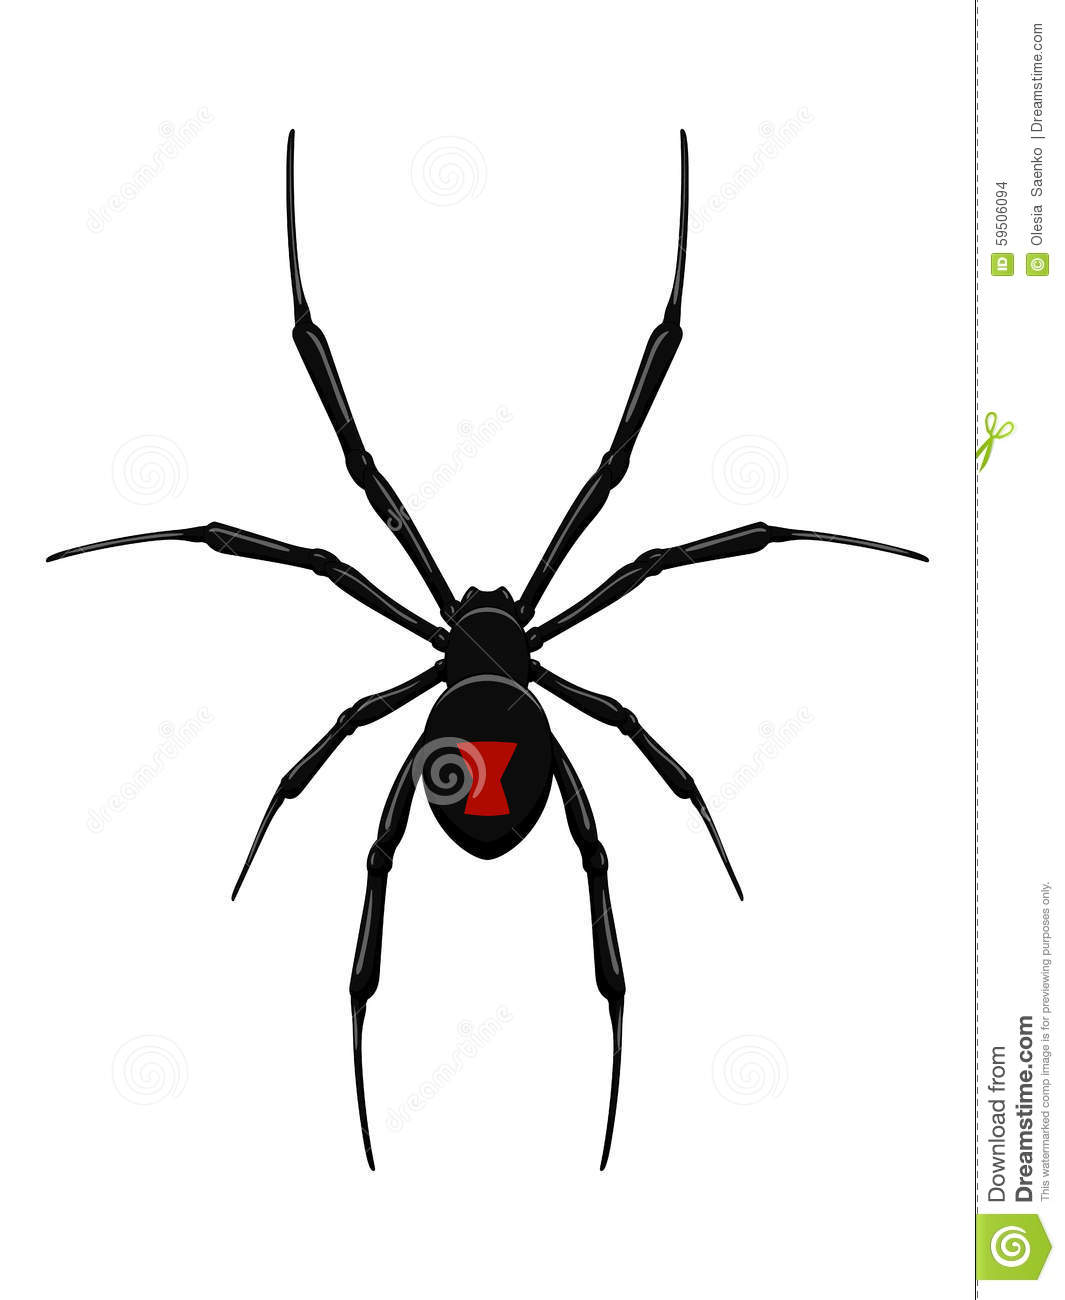 Black Widow Spider Stock Vector Illustration Of Design